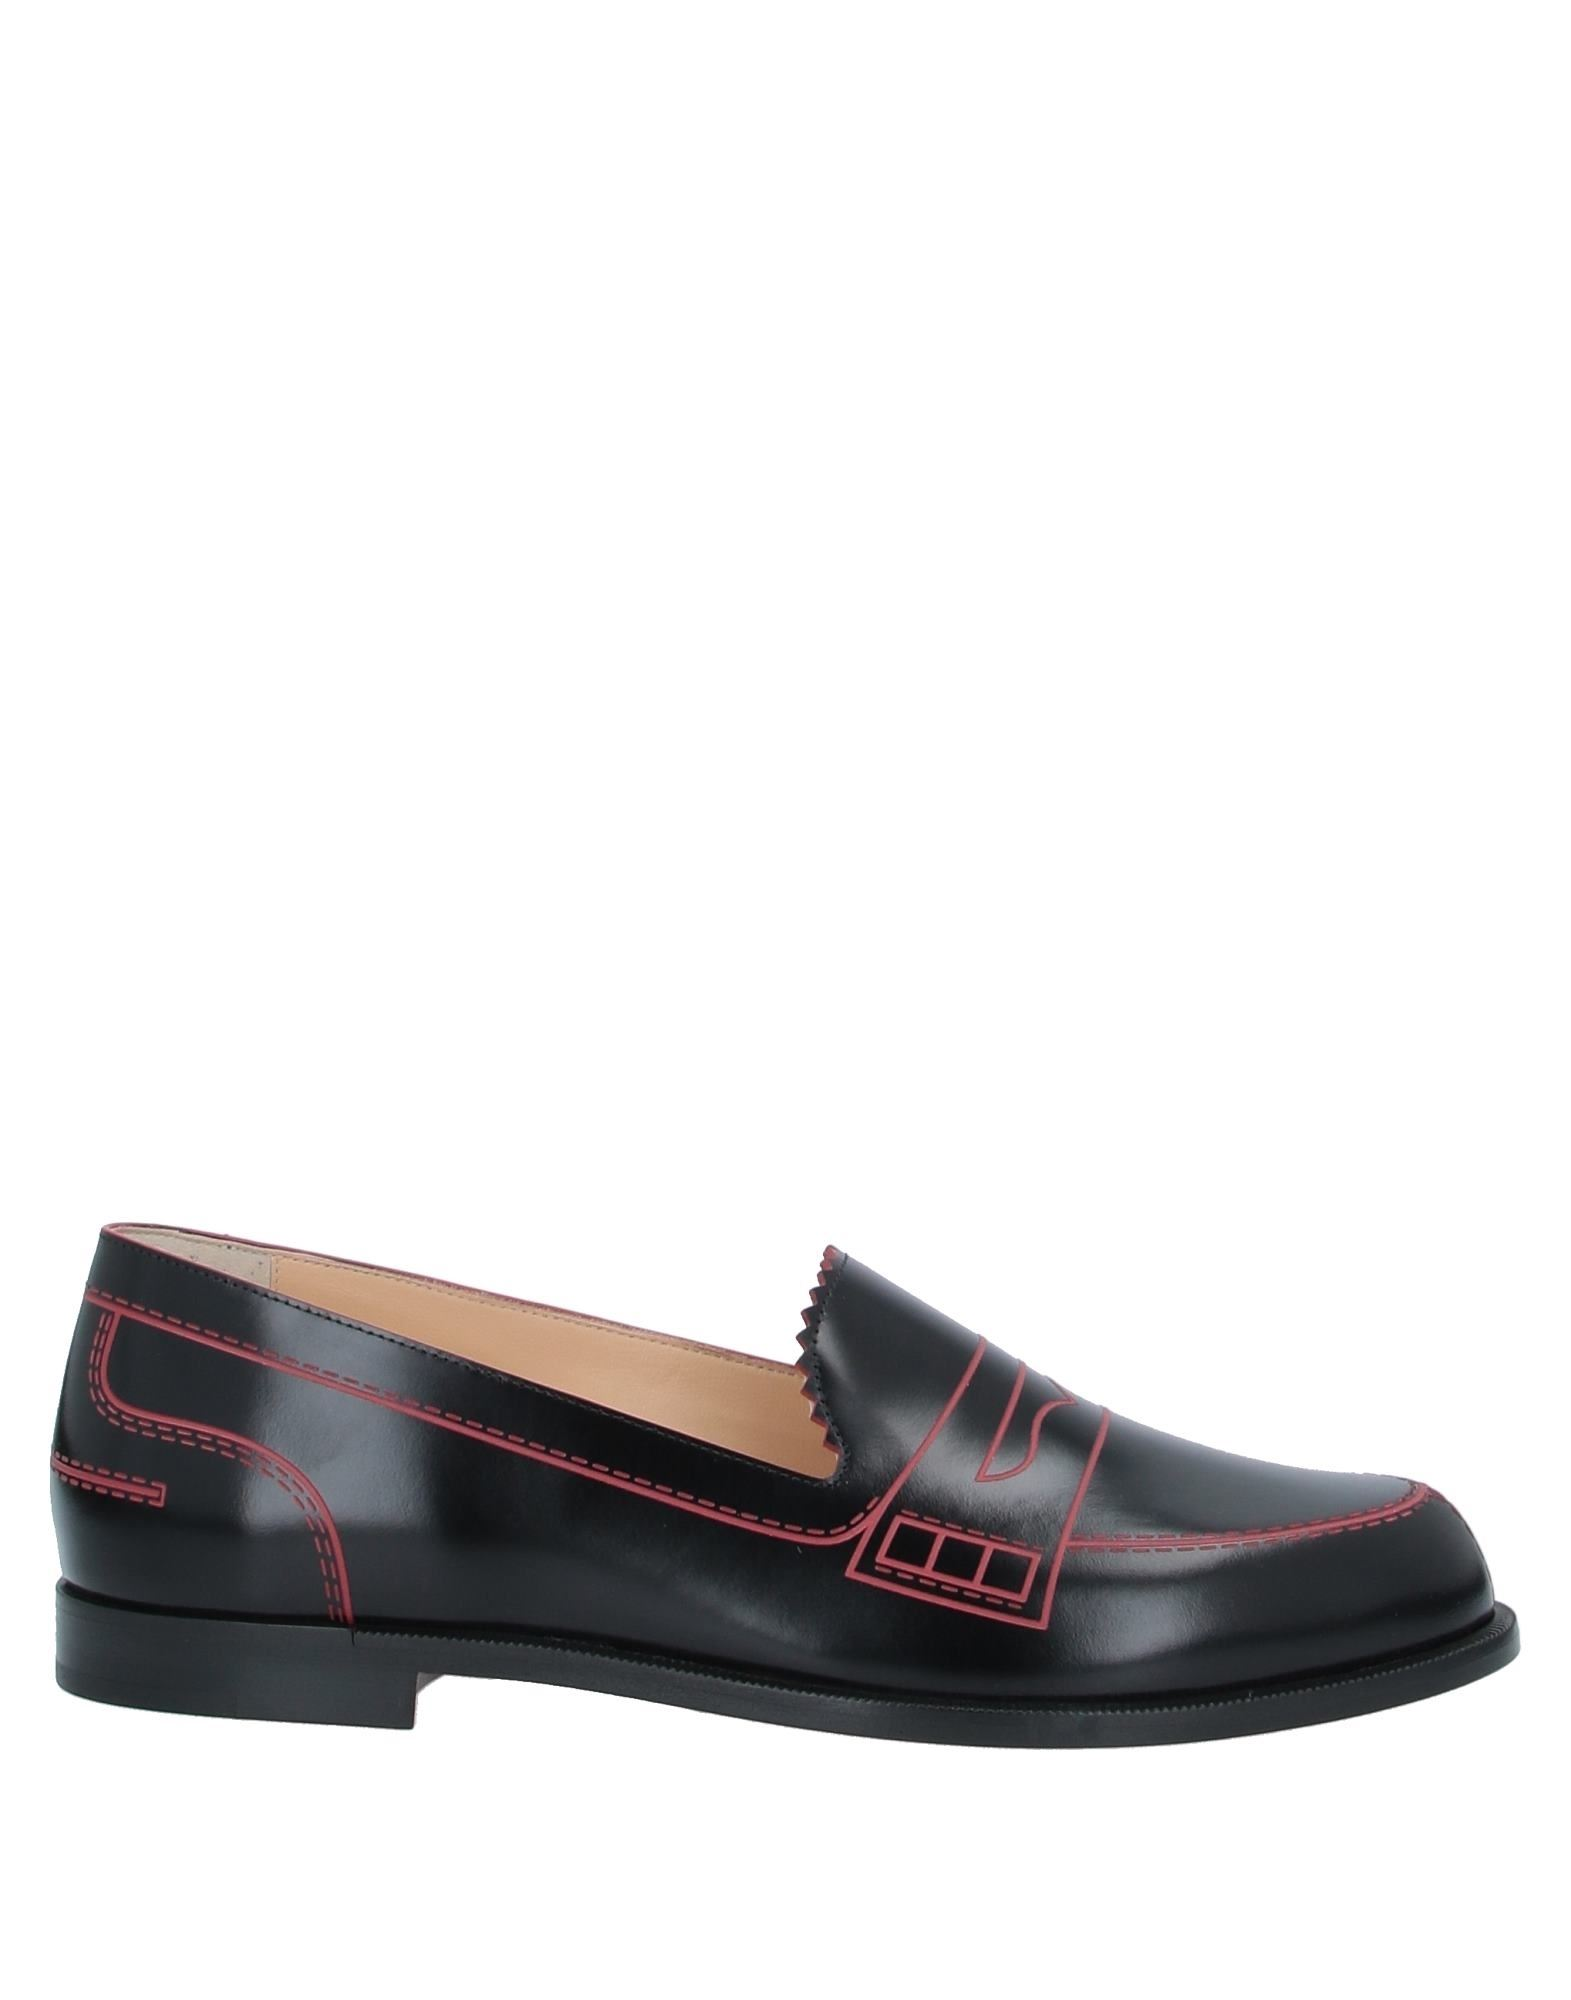 CHRISTIAN LOUBOUTIN Loafers. leather, no appliqués, solid color, round toeline, flat, leather lining, leather sole, contains non-textile parts of animal origin, small sized. Calfskin